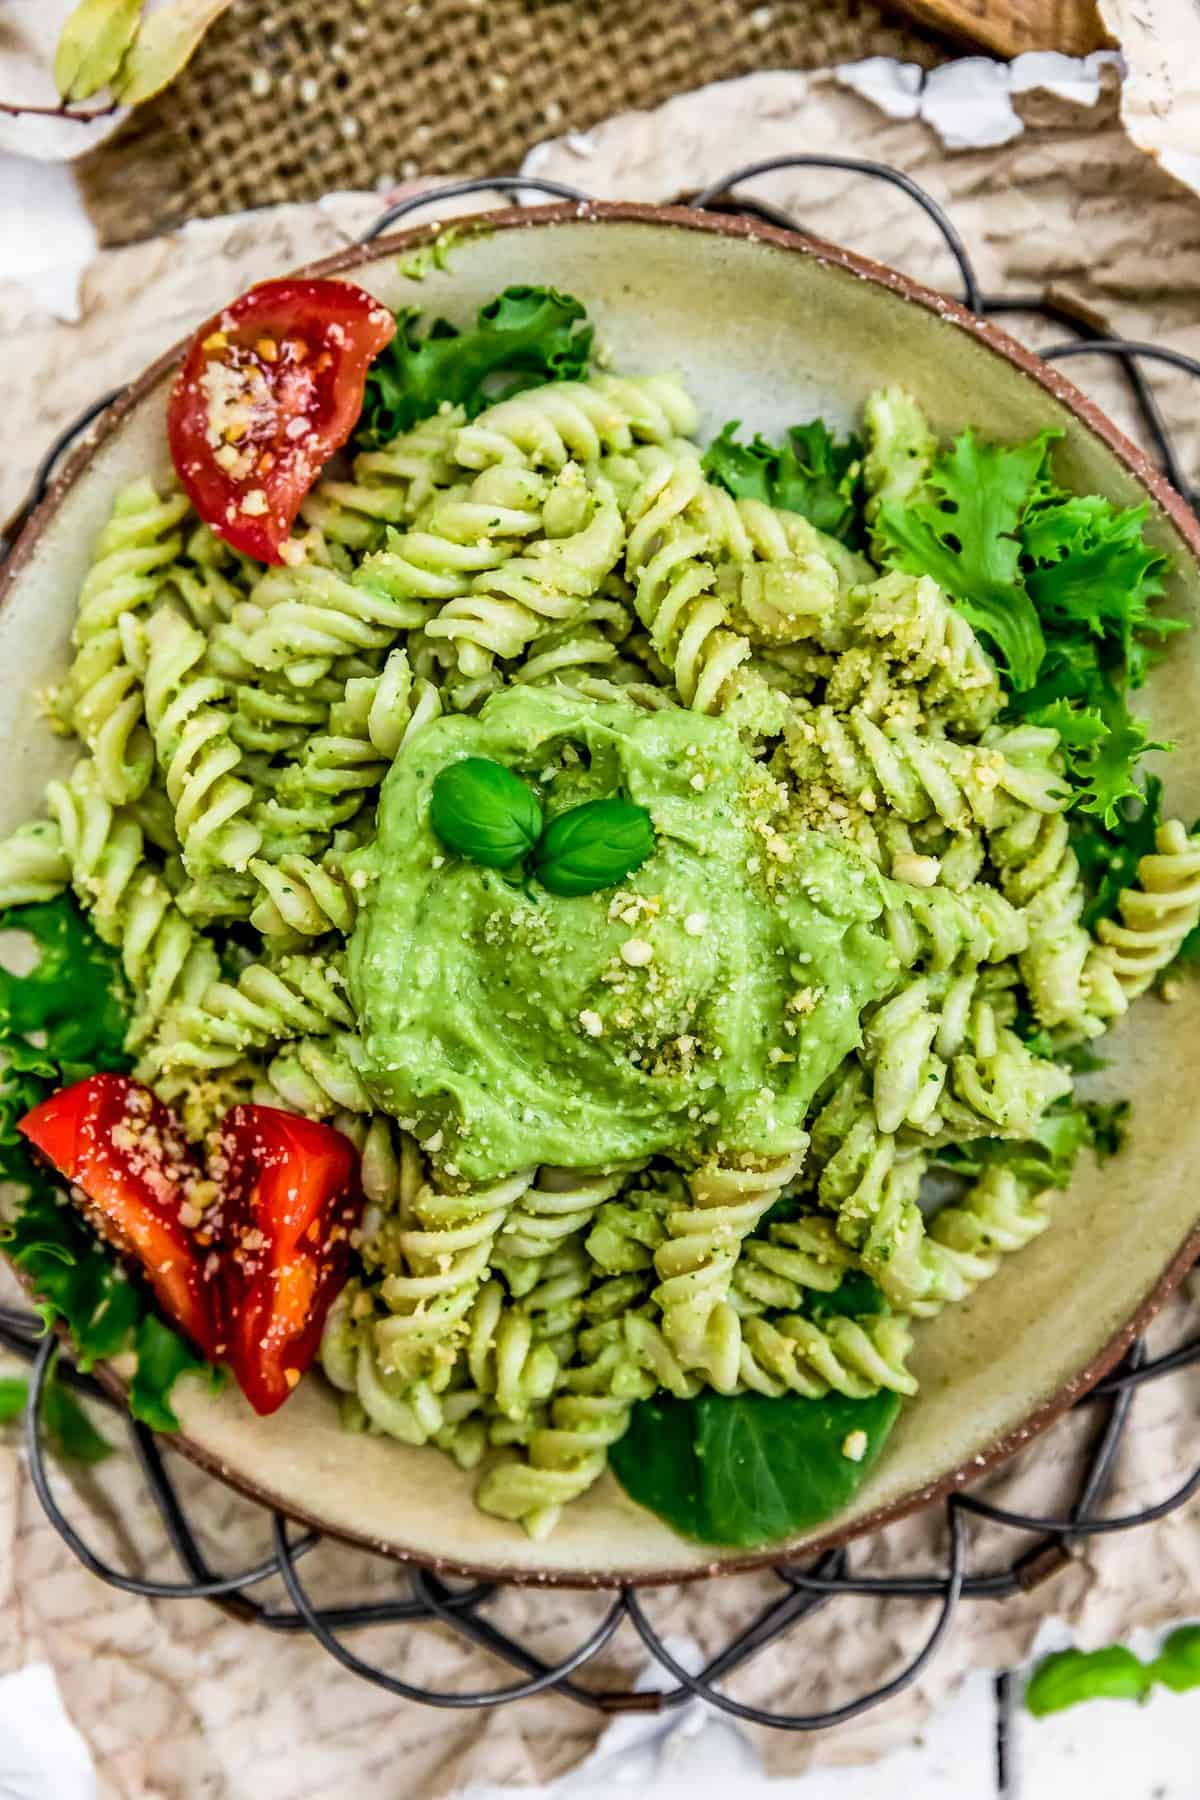 Pasta and Vegan Oil Free Avocado Pesto